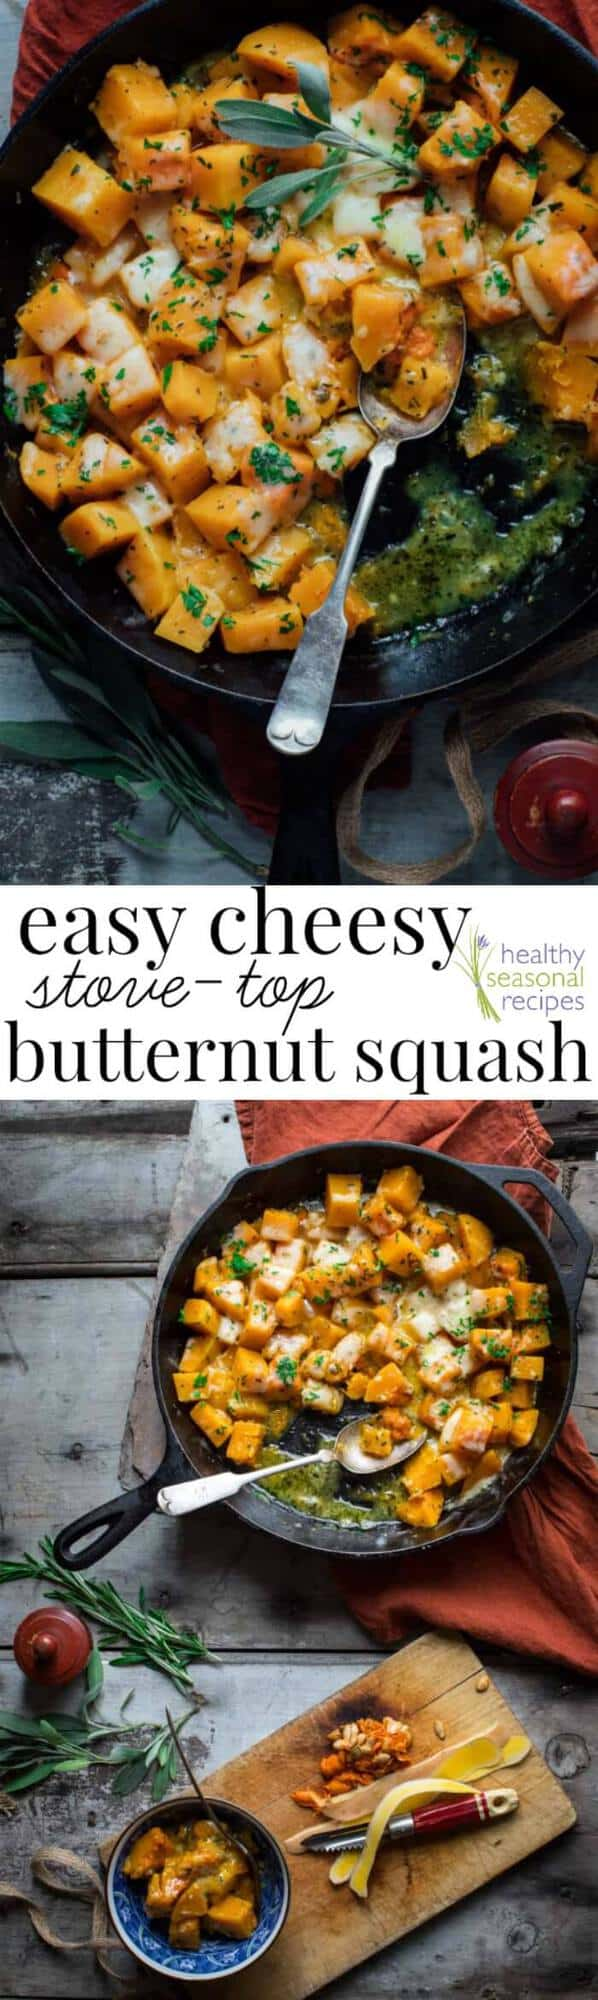 A skillet with Stove and Butternut Squash with text